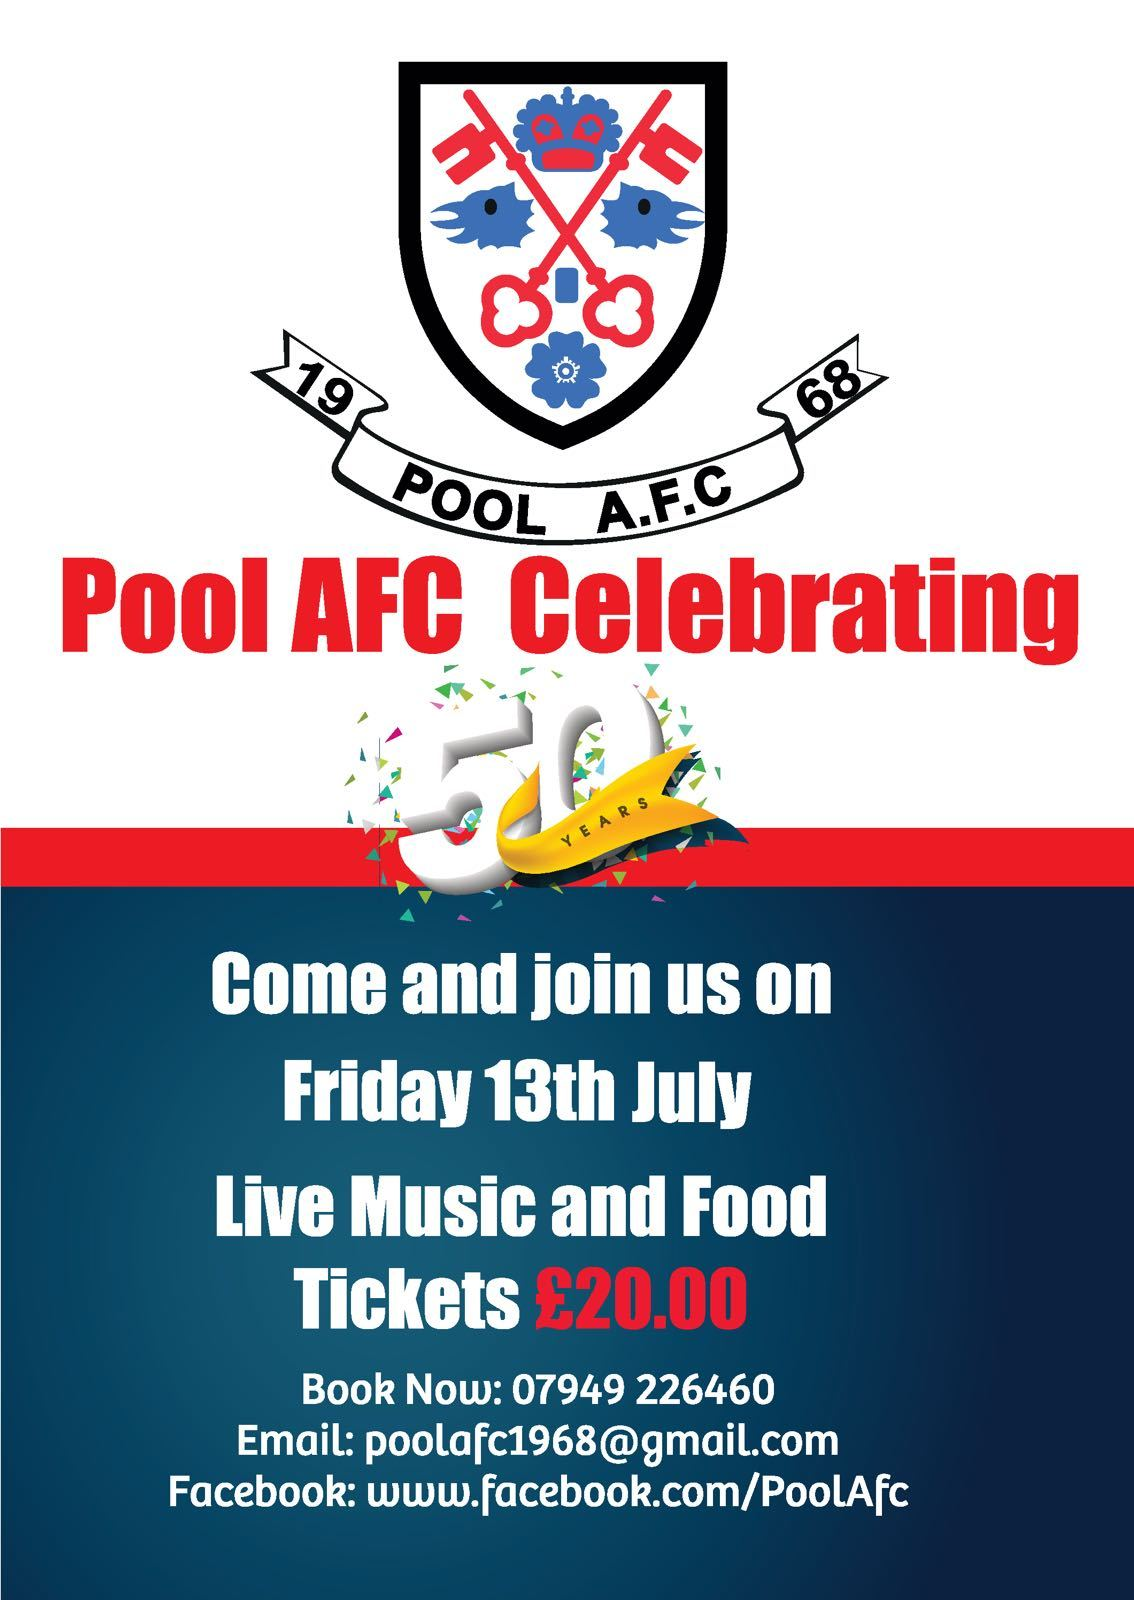 Pool are celebrating their 50th birthday on Friday, July 13, and everyone is welcome to join Picture: Pool AFC